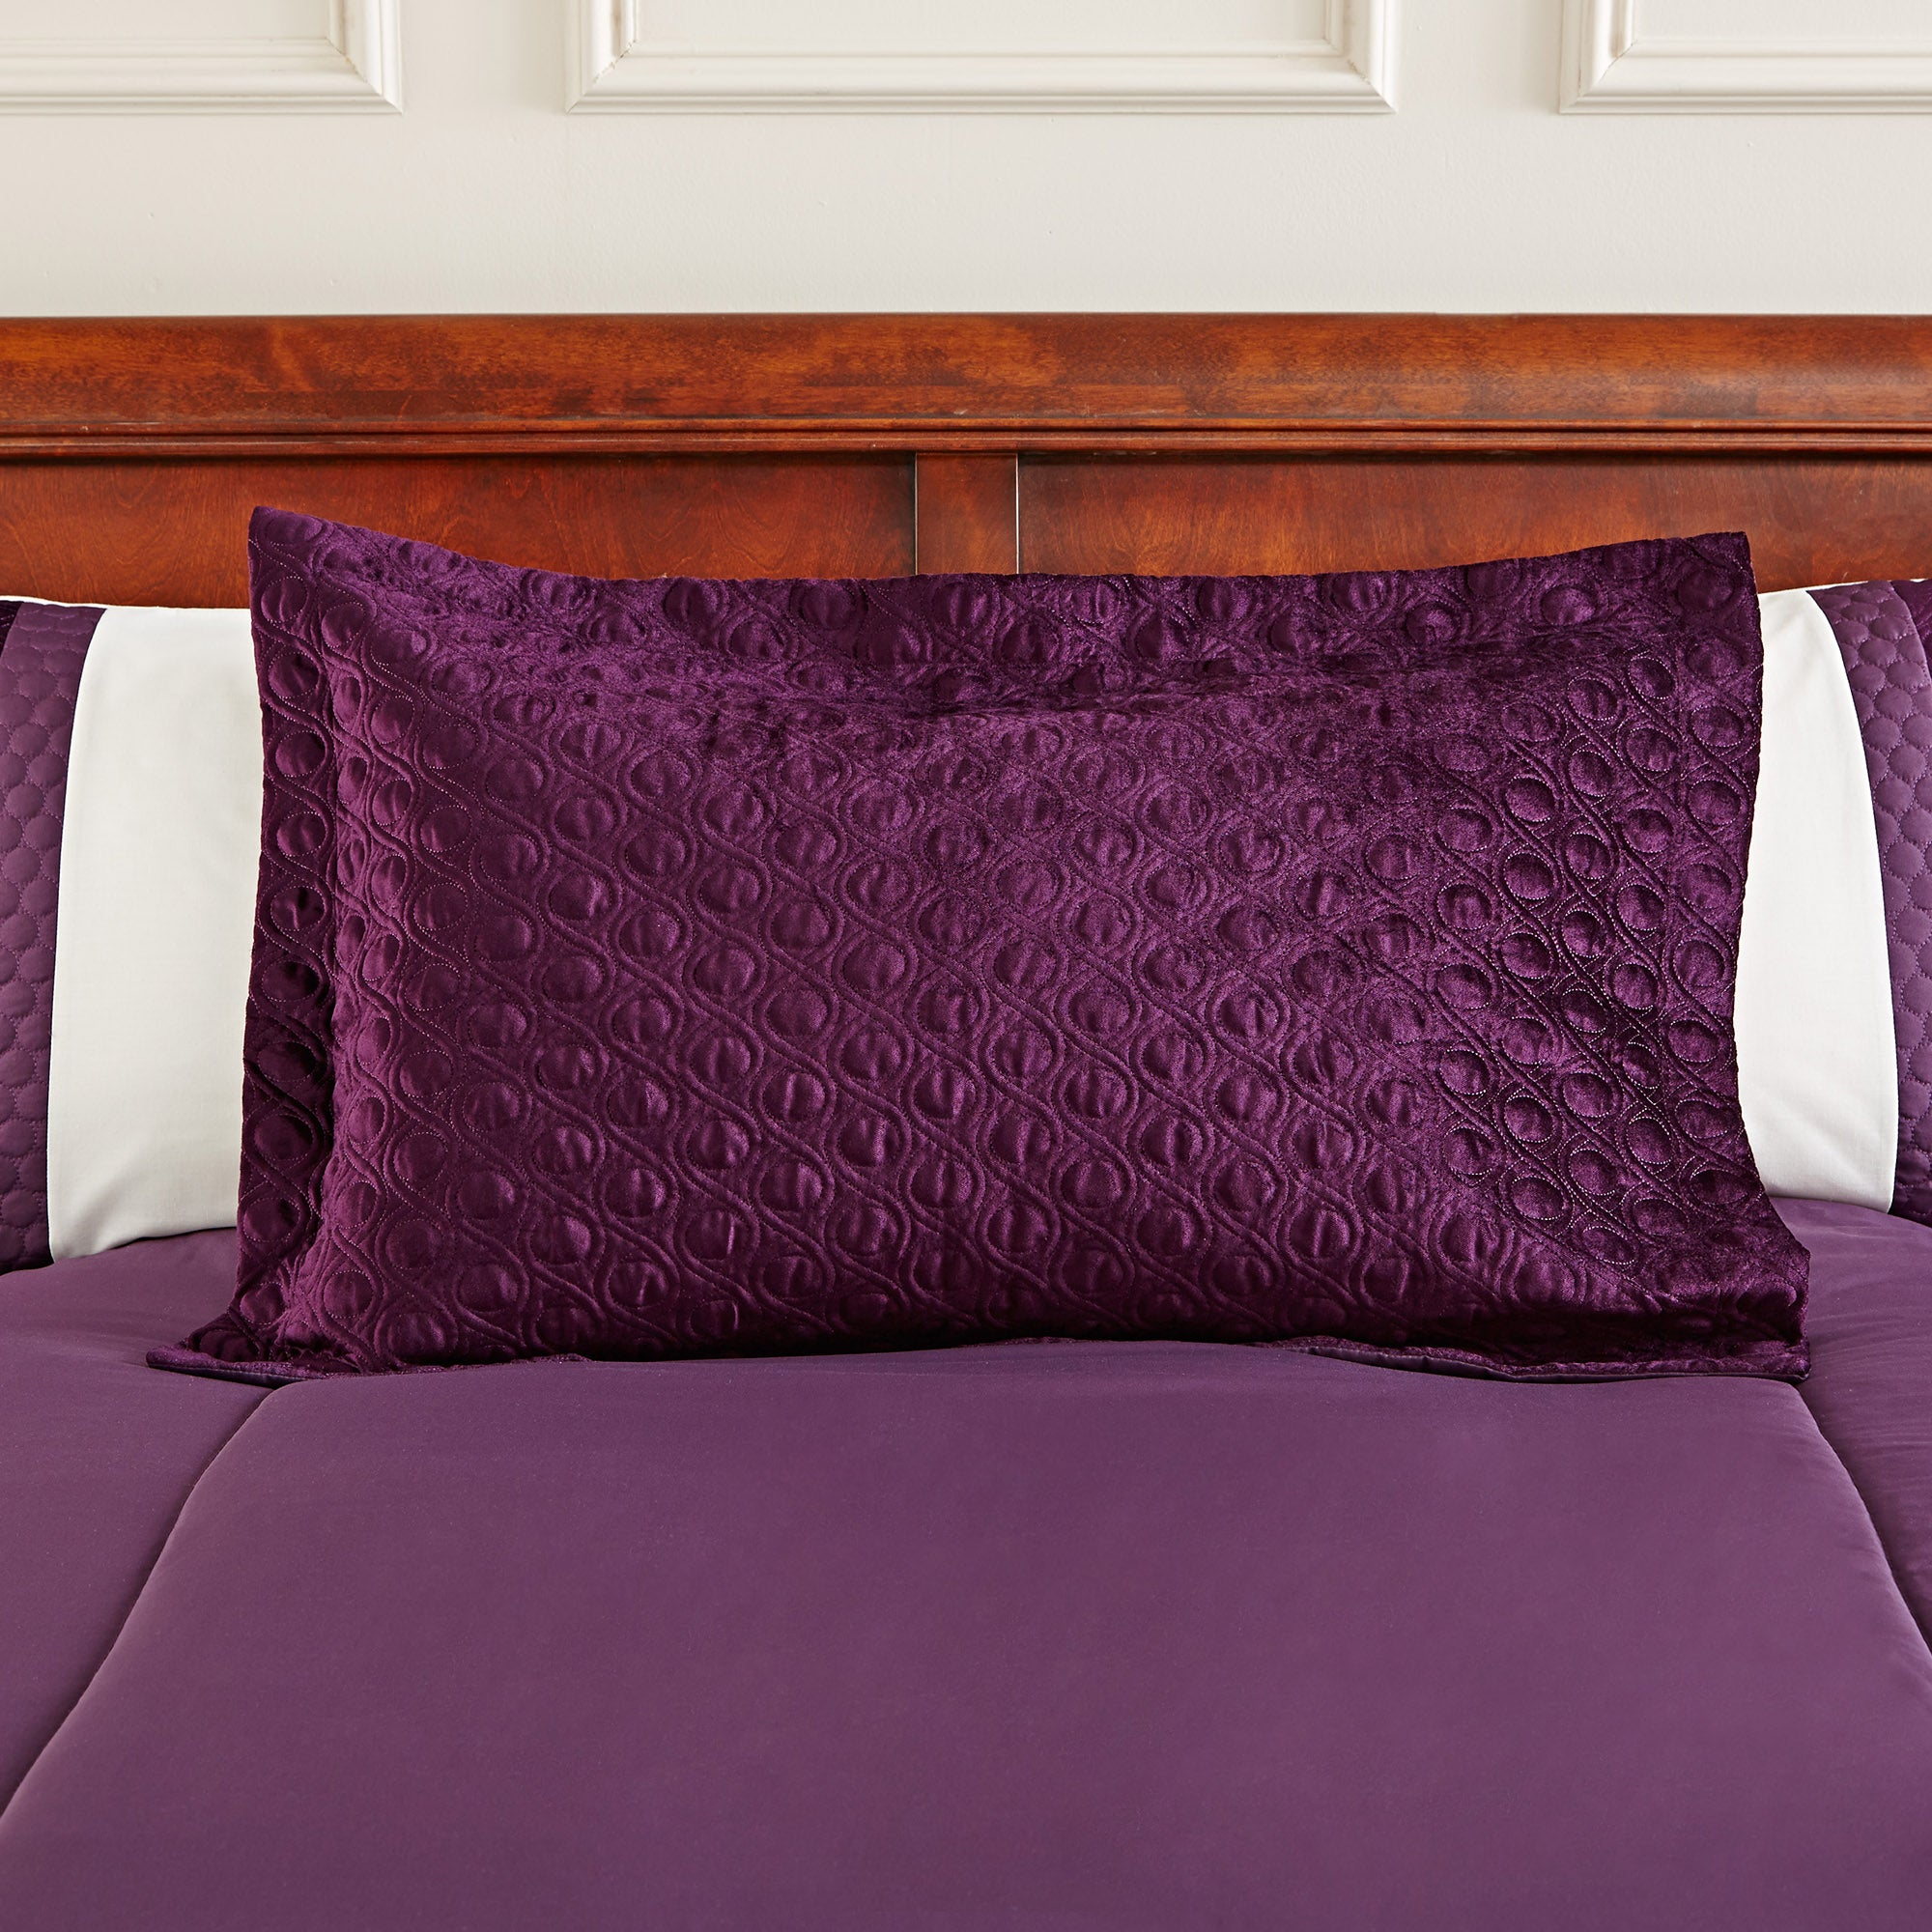 Image of Adalene Plum Pillow Sham Plum (Purple)